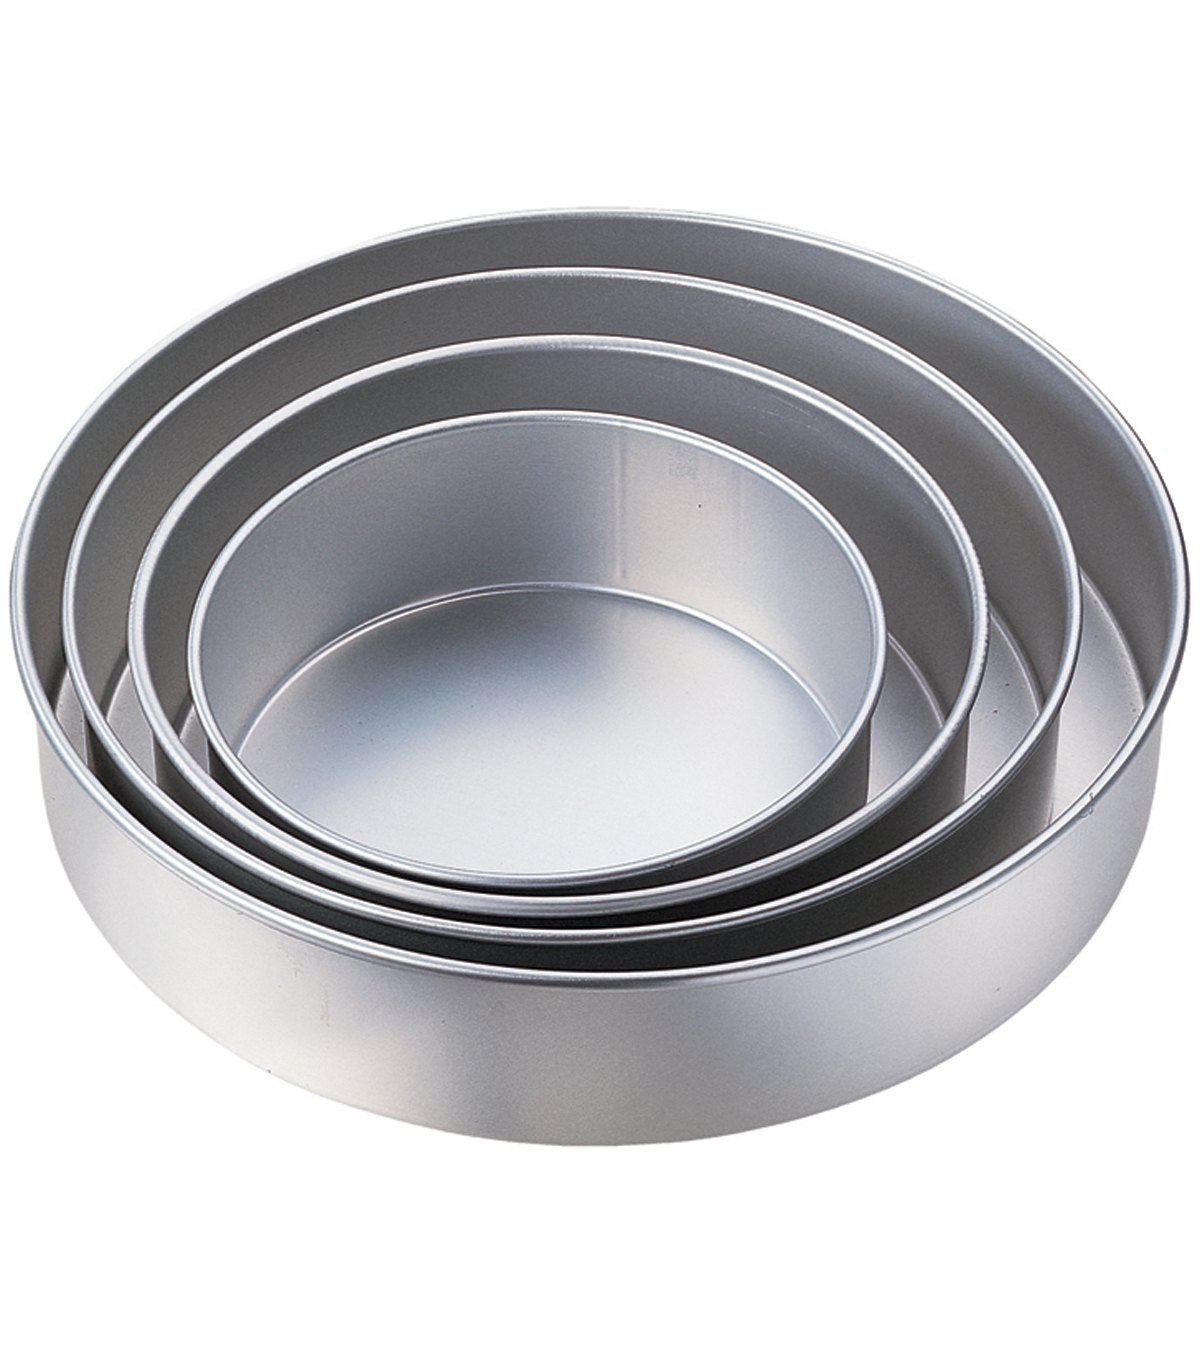 Different Cake Pans